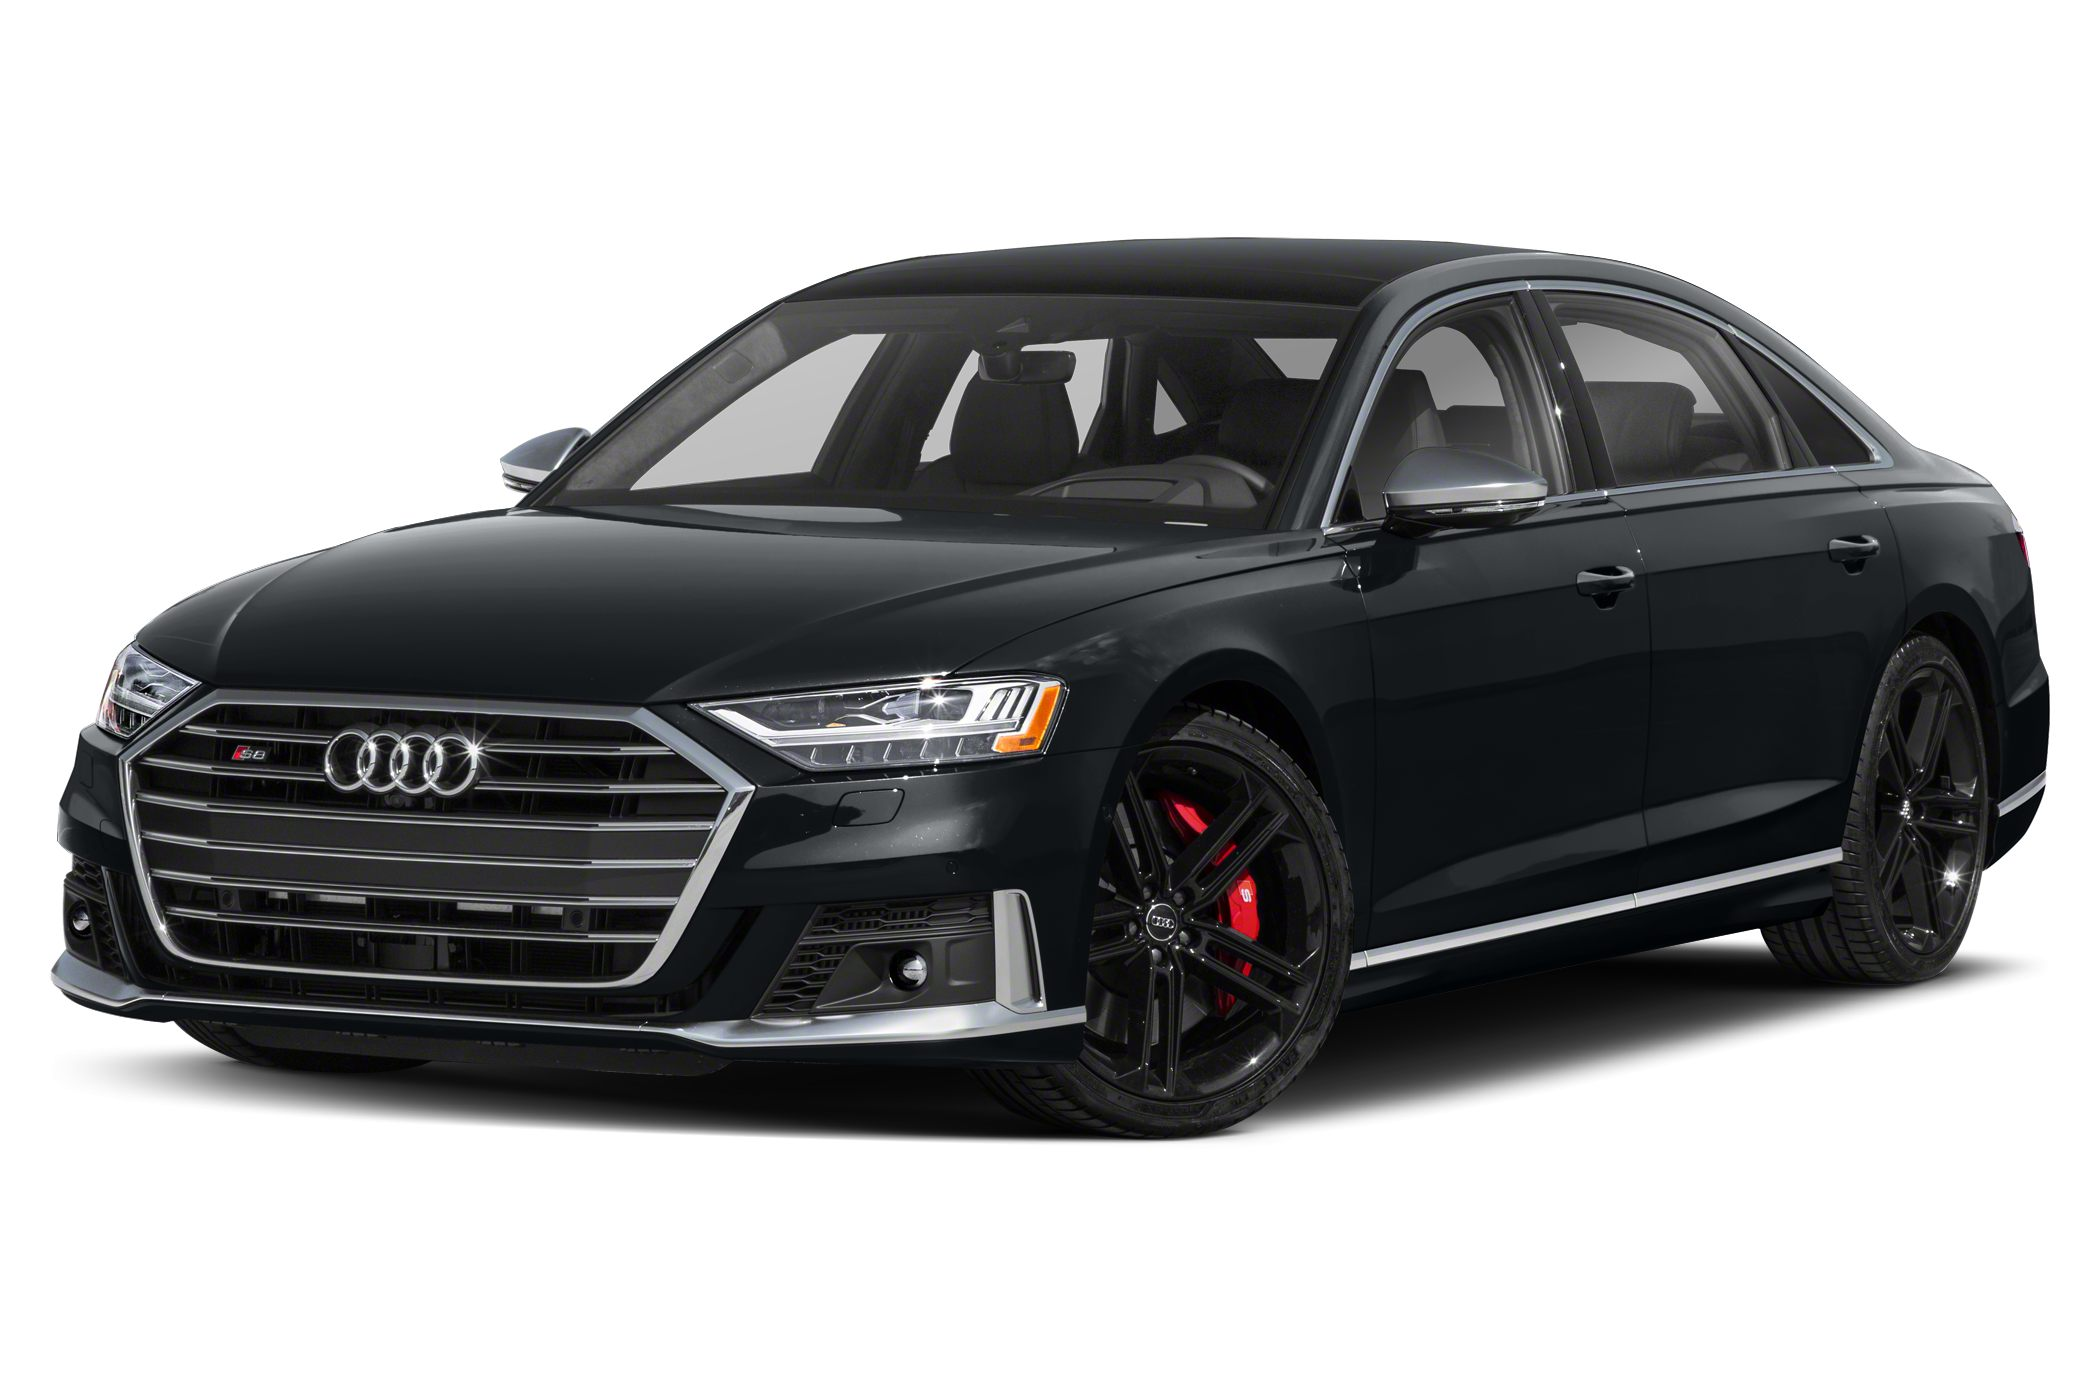 2020 Audi S8 4 0t 4dr All Wheel Drive Quattro Sedan Specs And Prices